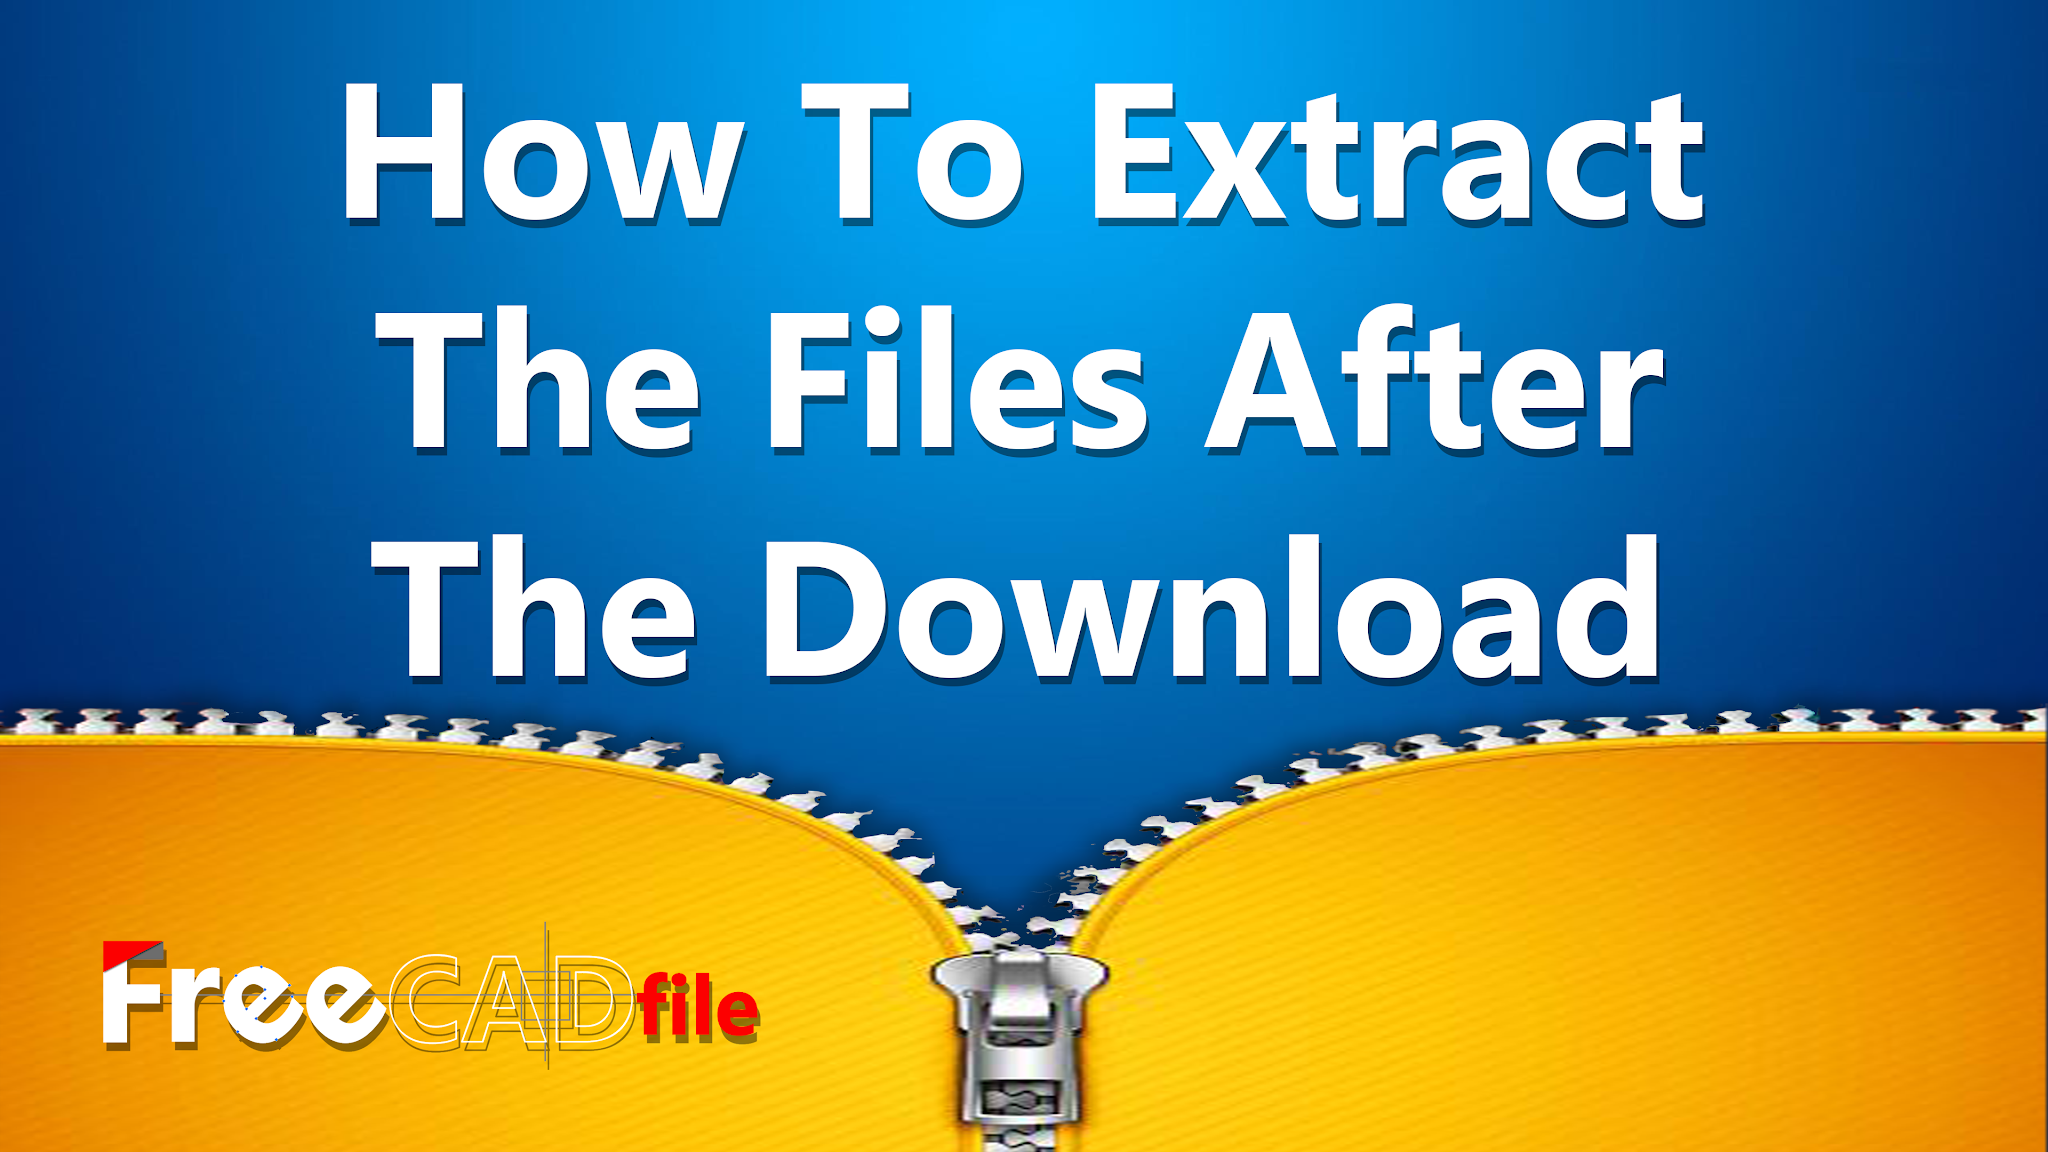 https://www.freecadfiles.com/2021/01/how-to-extract-files-after-download.html